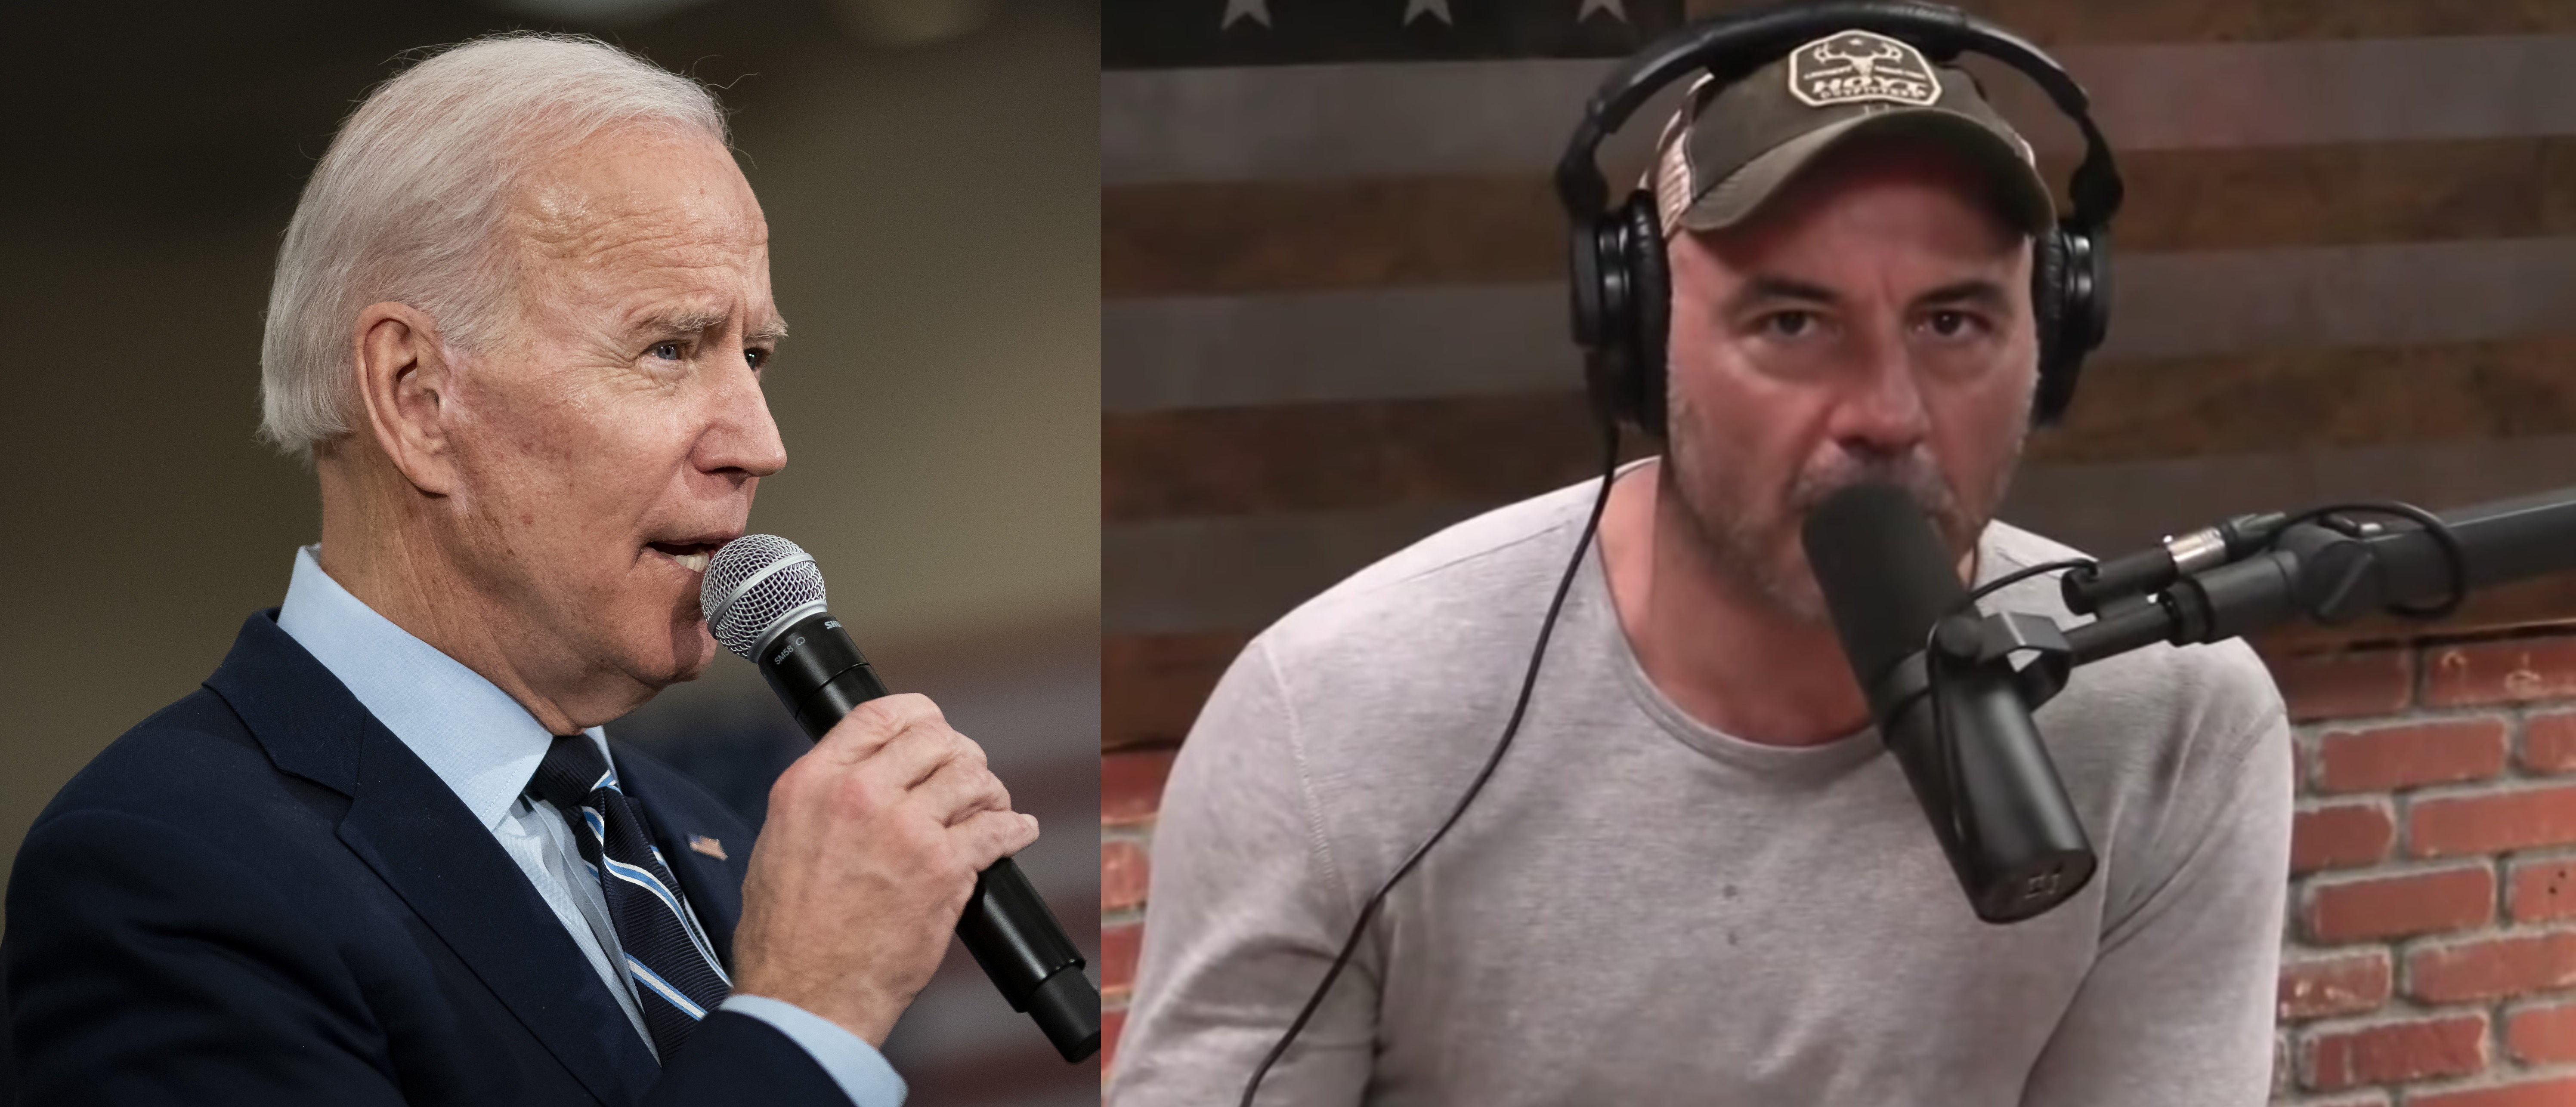 Joe Biden Says 'No Room For Compromise' On Transgender Issues As Bernie Faces Backlash For Joe Rogan Endorsement